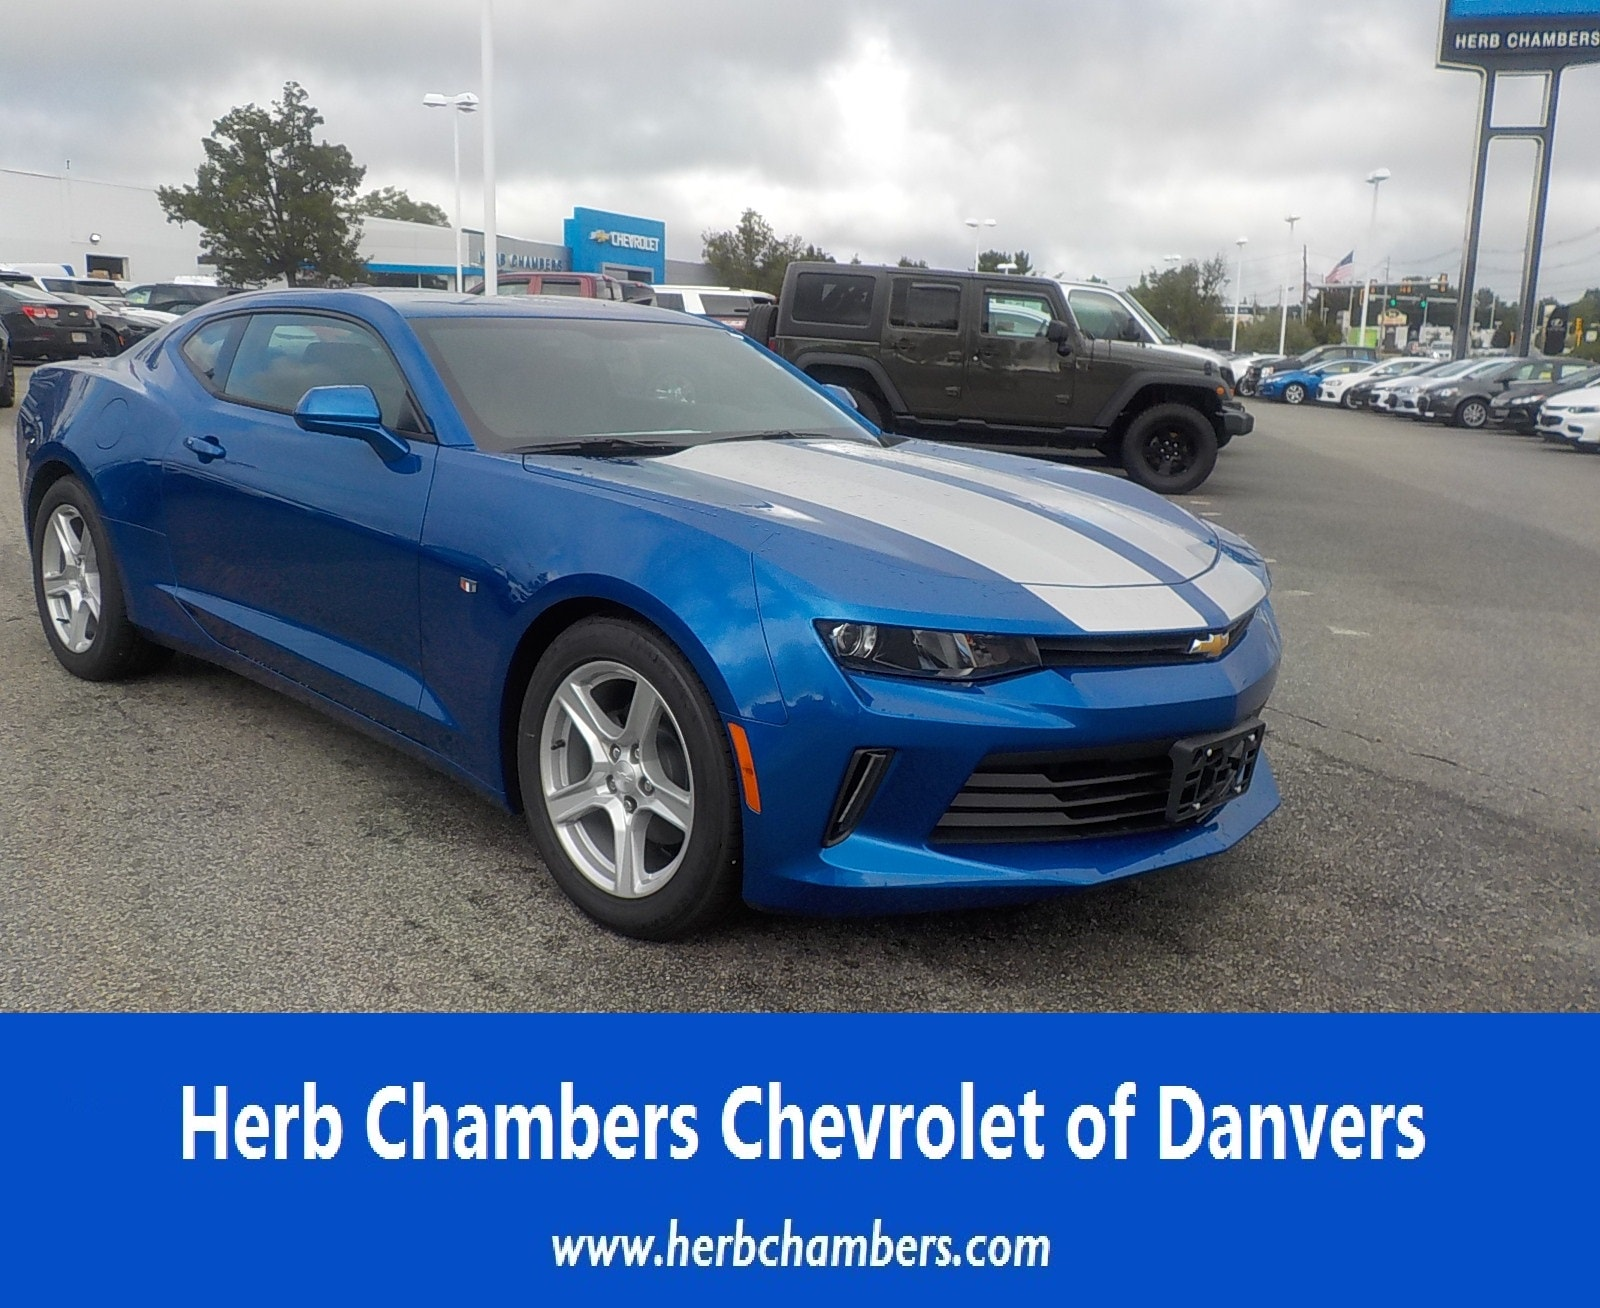 Herb Chambers Chevrolet >> New 2018 Chevrolet Camaro Coupe In Danvers Ma Near Boston